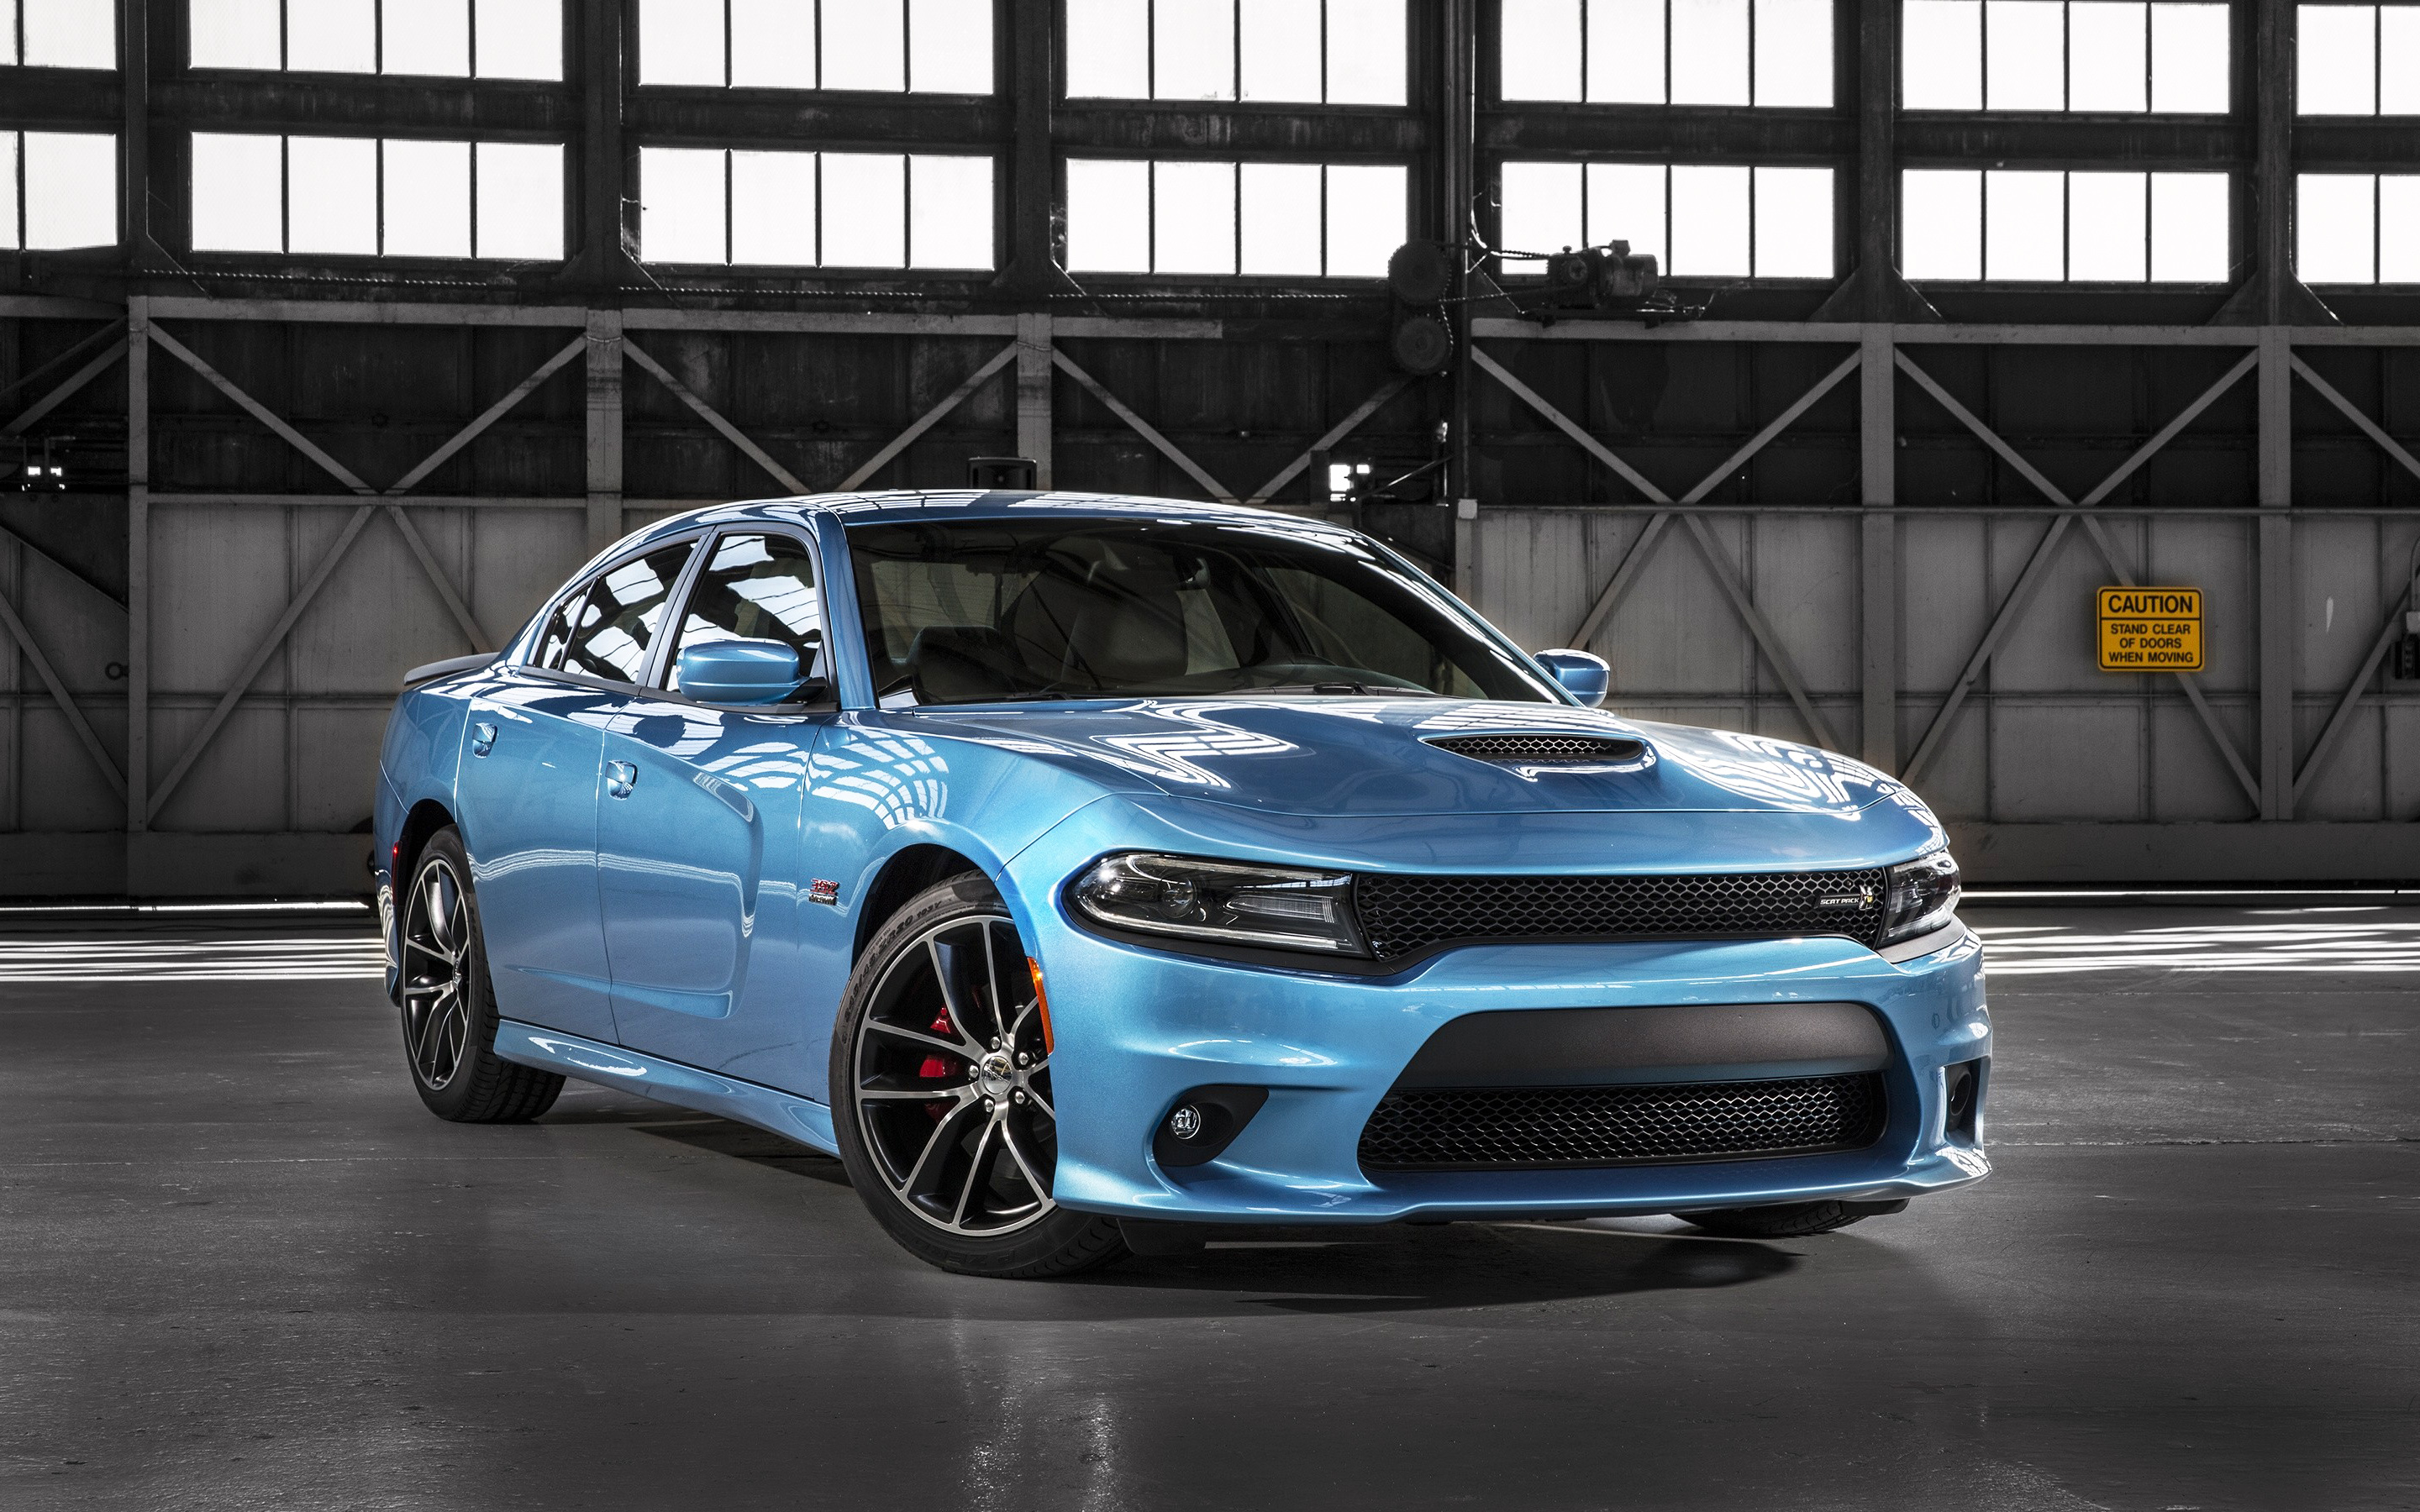 Free Download Dodge Charger Hellcat Wallpaper 4390 Views 2015